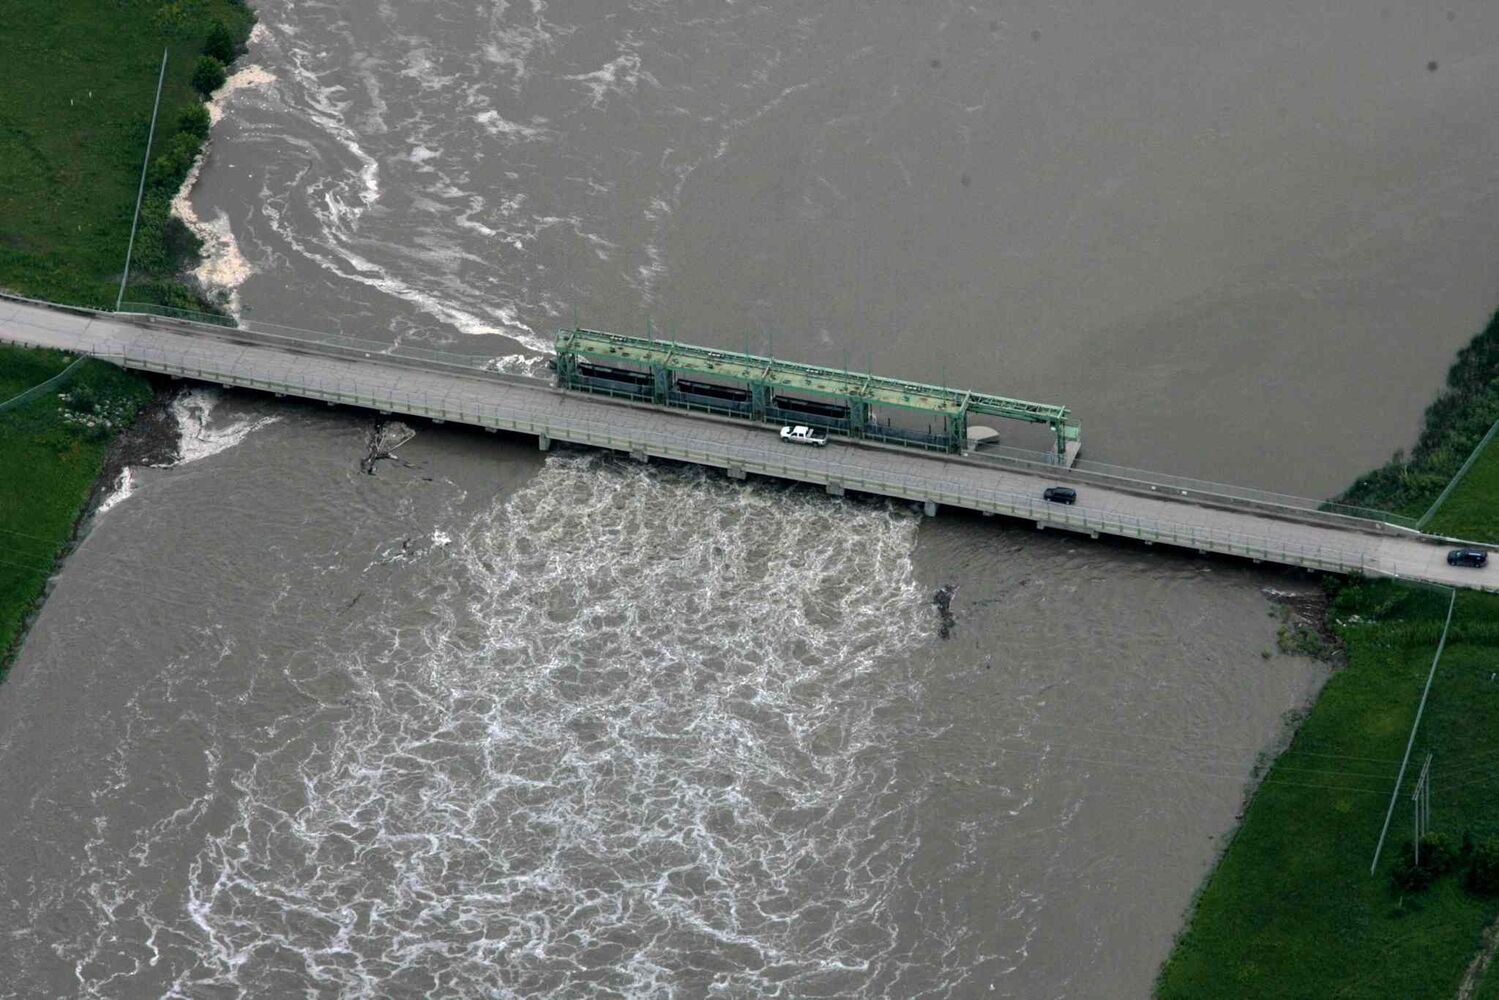 Heavy rains in western Manitoba and Saskatchewan recently have raised the level of the Assiniboine River, causing it to overflow its banks, flooding roads and farmers' fields. Aerial photo of bridge over the  Portage diversion dam just west of town where water is diverted north to Lake Manitoba.    (RUTH BONNEVILLE / WINNIPEG FREE PRESS)